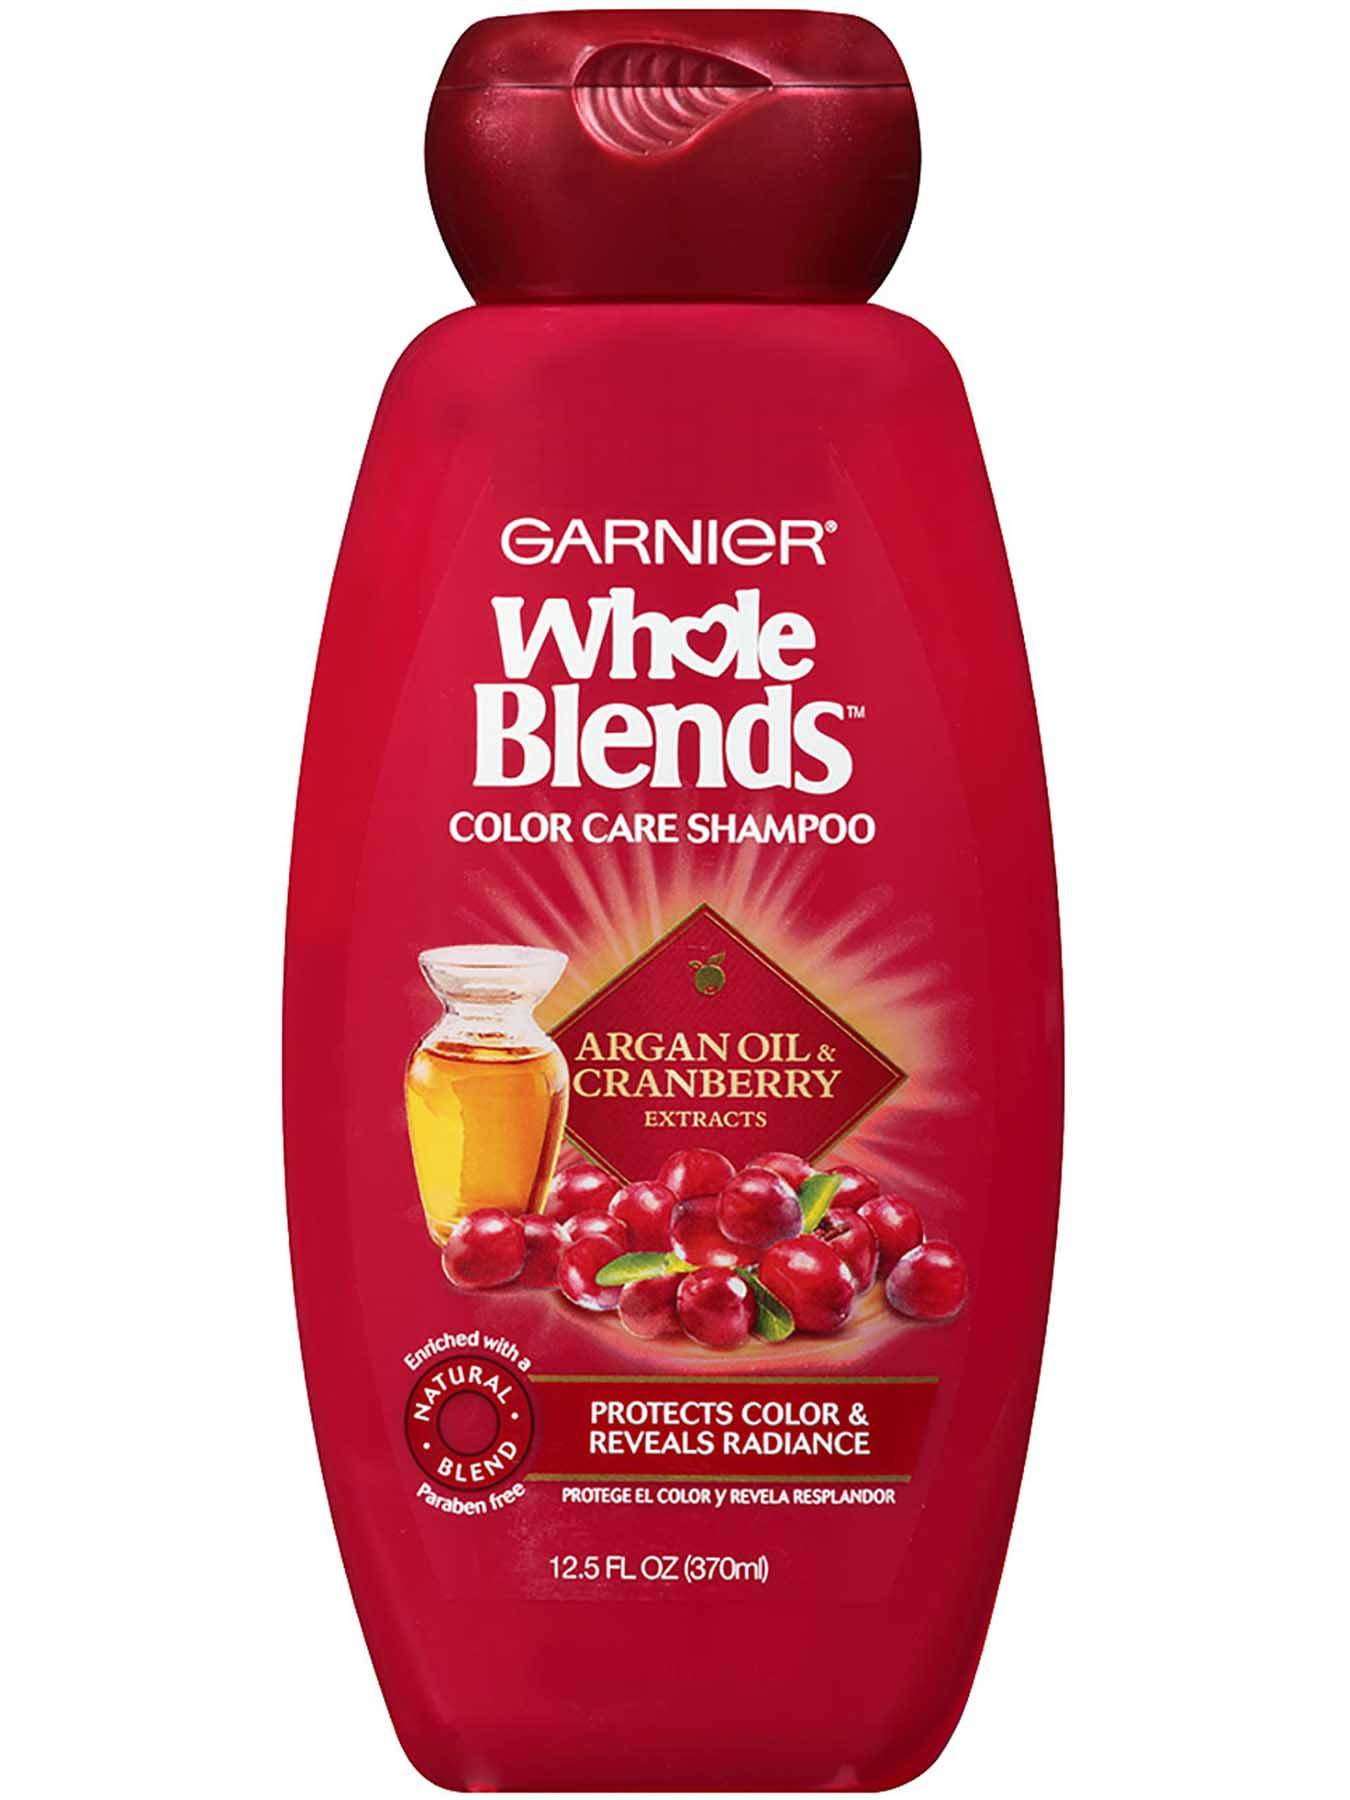 Front view of Color Care Shampoo with Argan Oil and Cranberry Extracts.